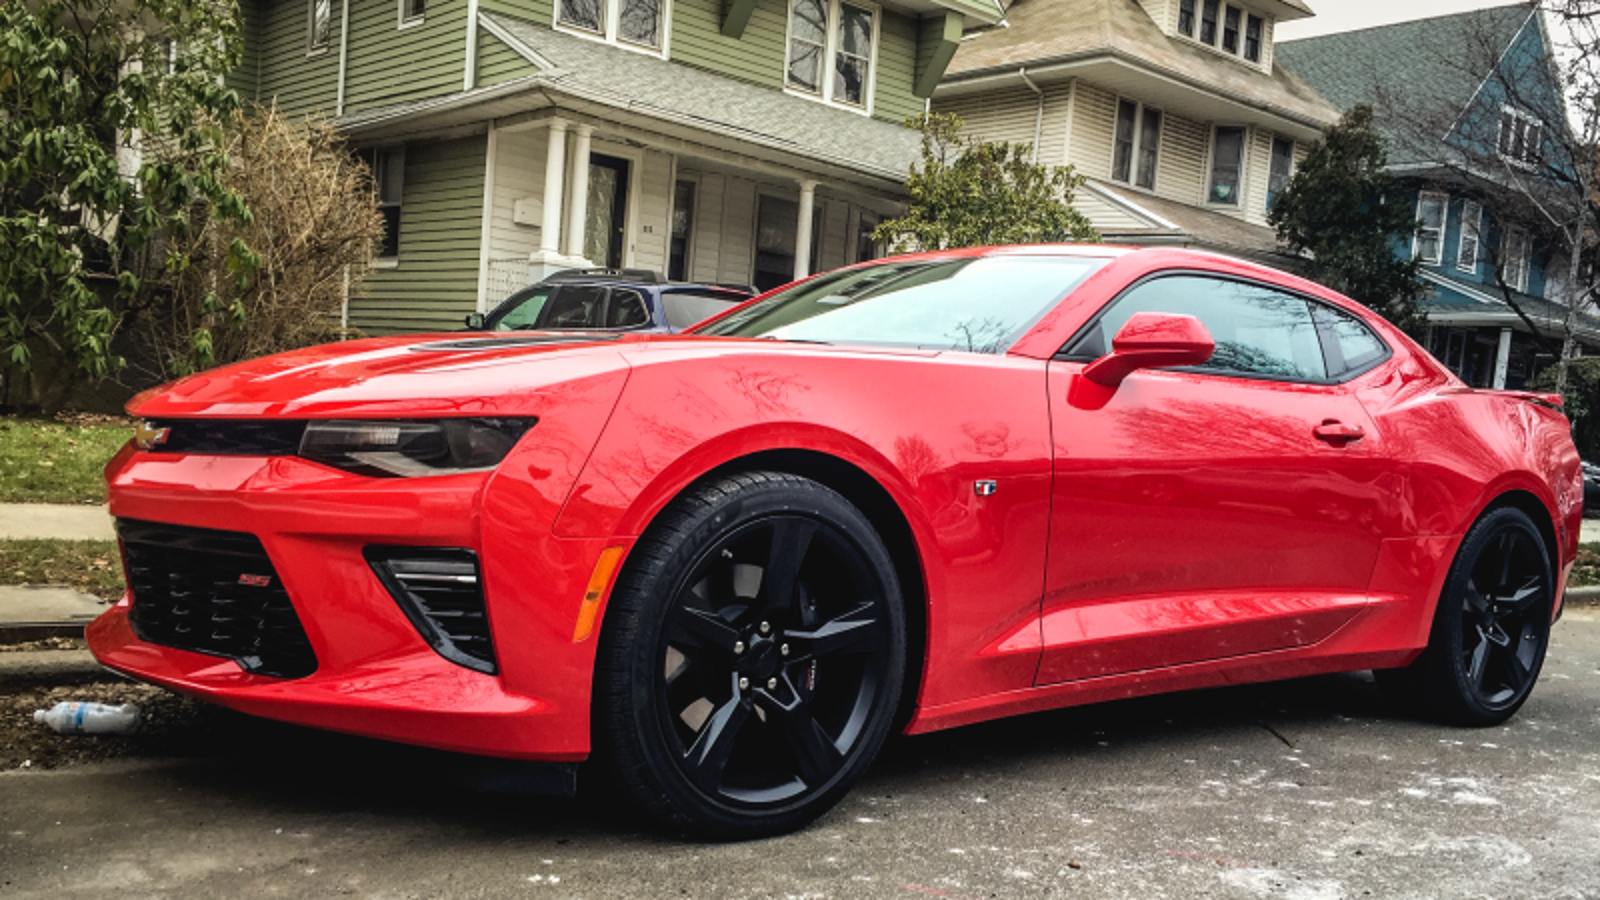 Brand New Chevrolet Camaros Are Absurdly Cheap Right Now